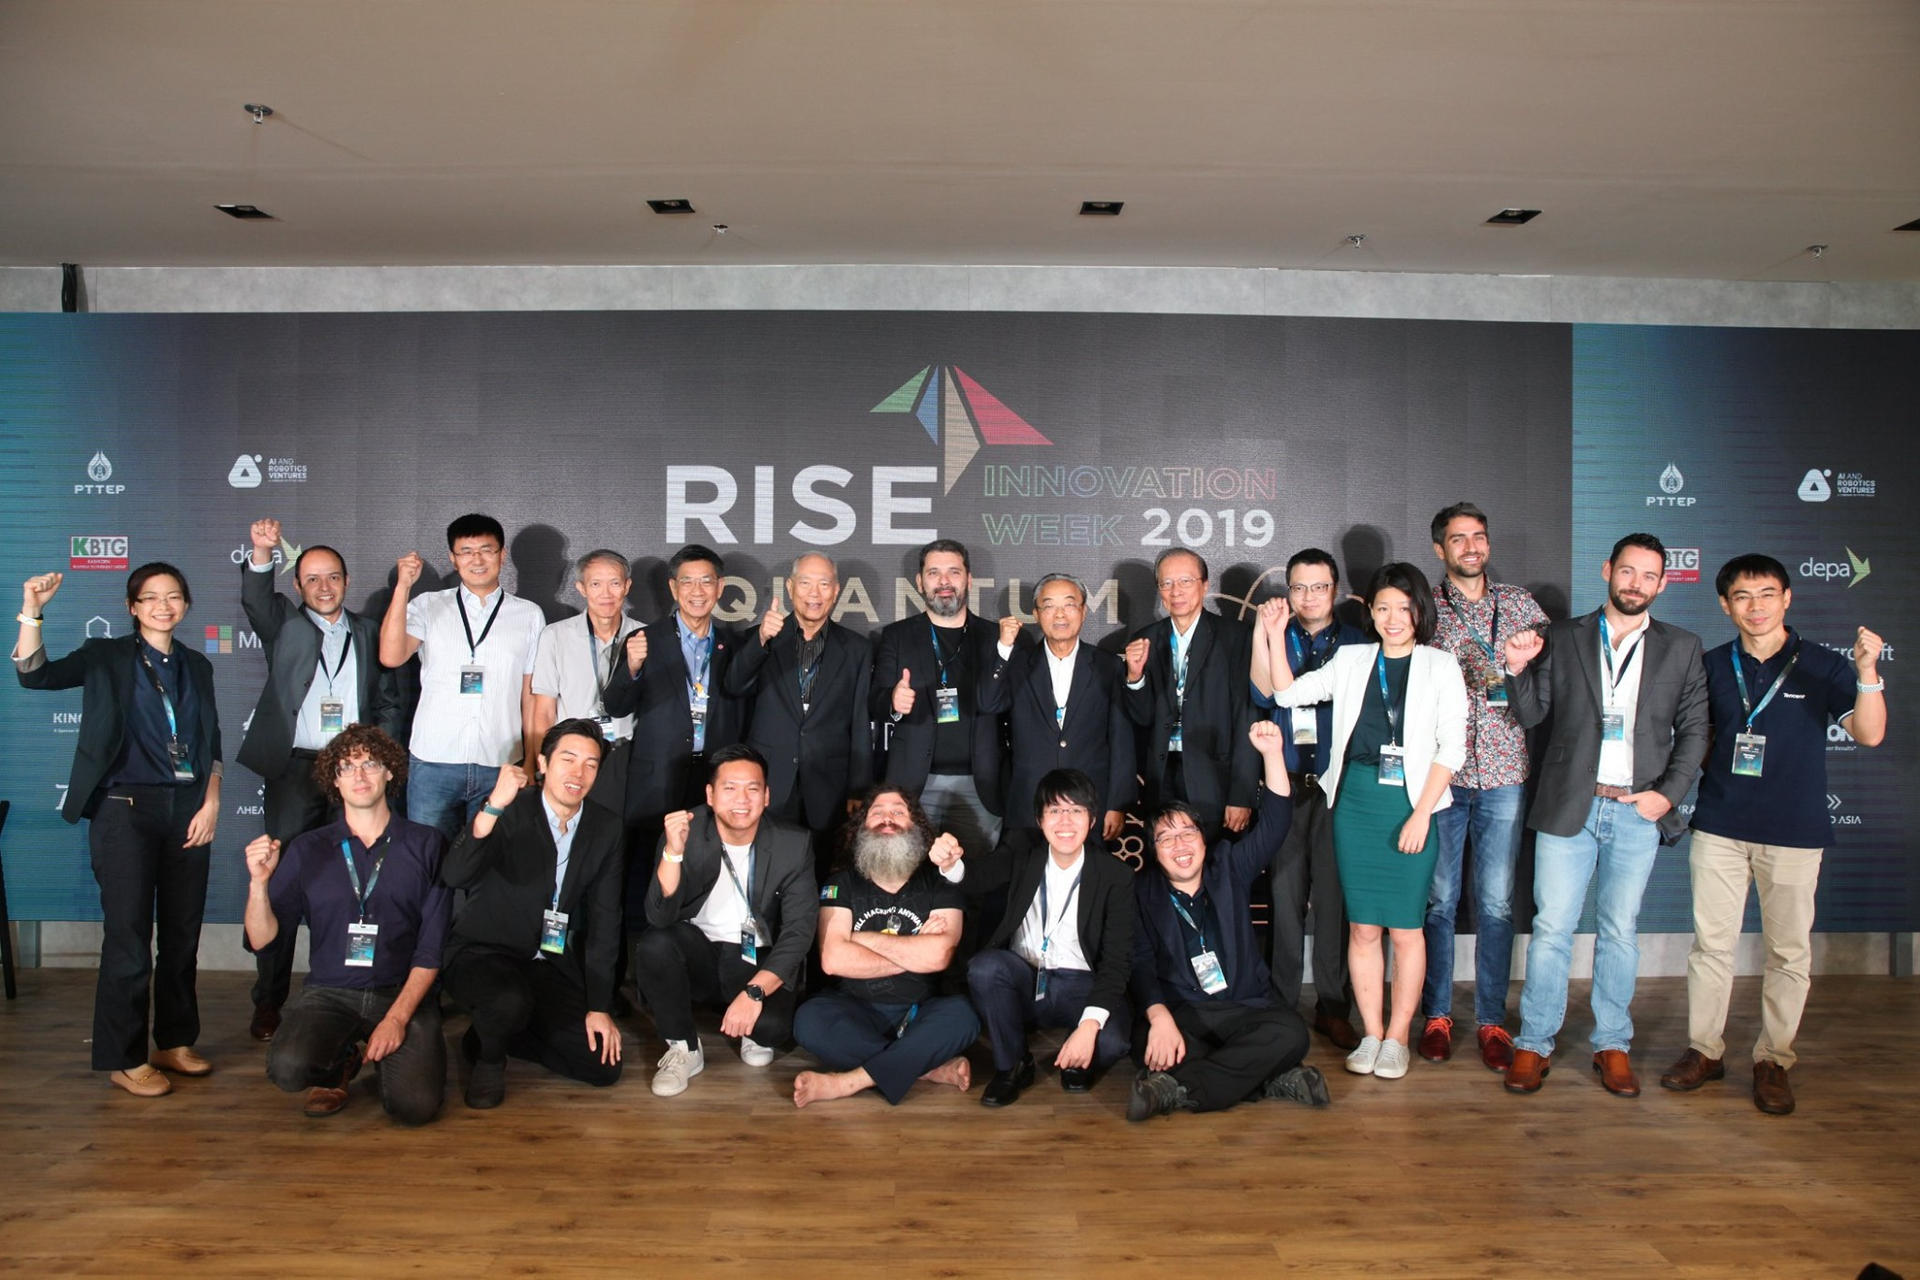 QTFT x RISE Innovation week 2019. Keynote speakers included the head of quantum computing team from Huawei, Baidu, Tencent, Senoir Researcher at Google, Principal Investigators from CQT and RQC.